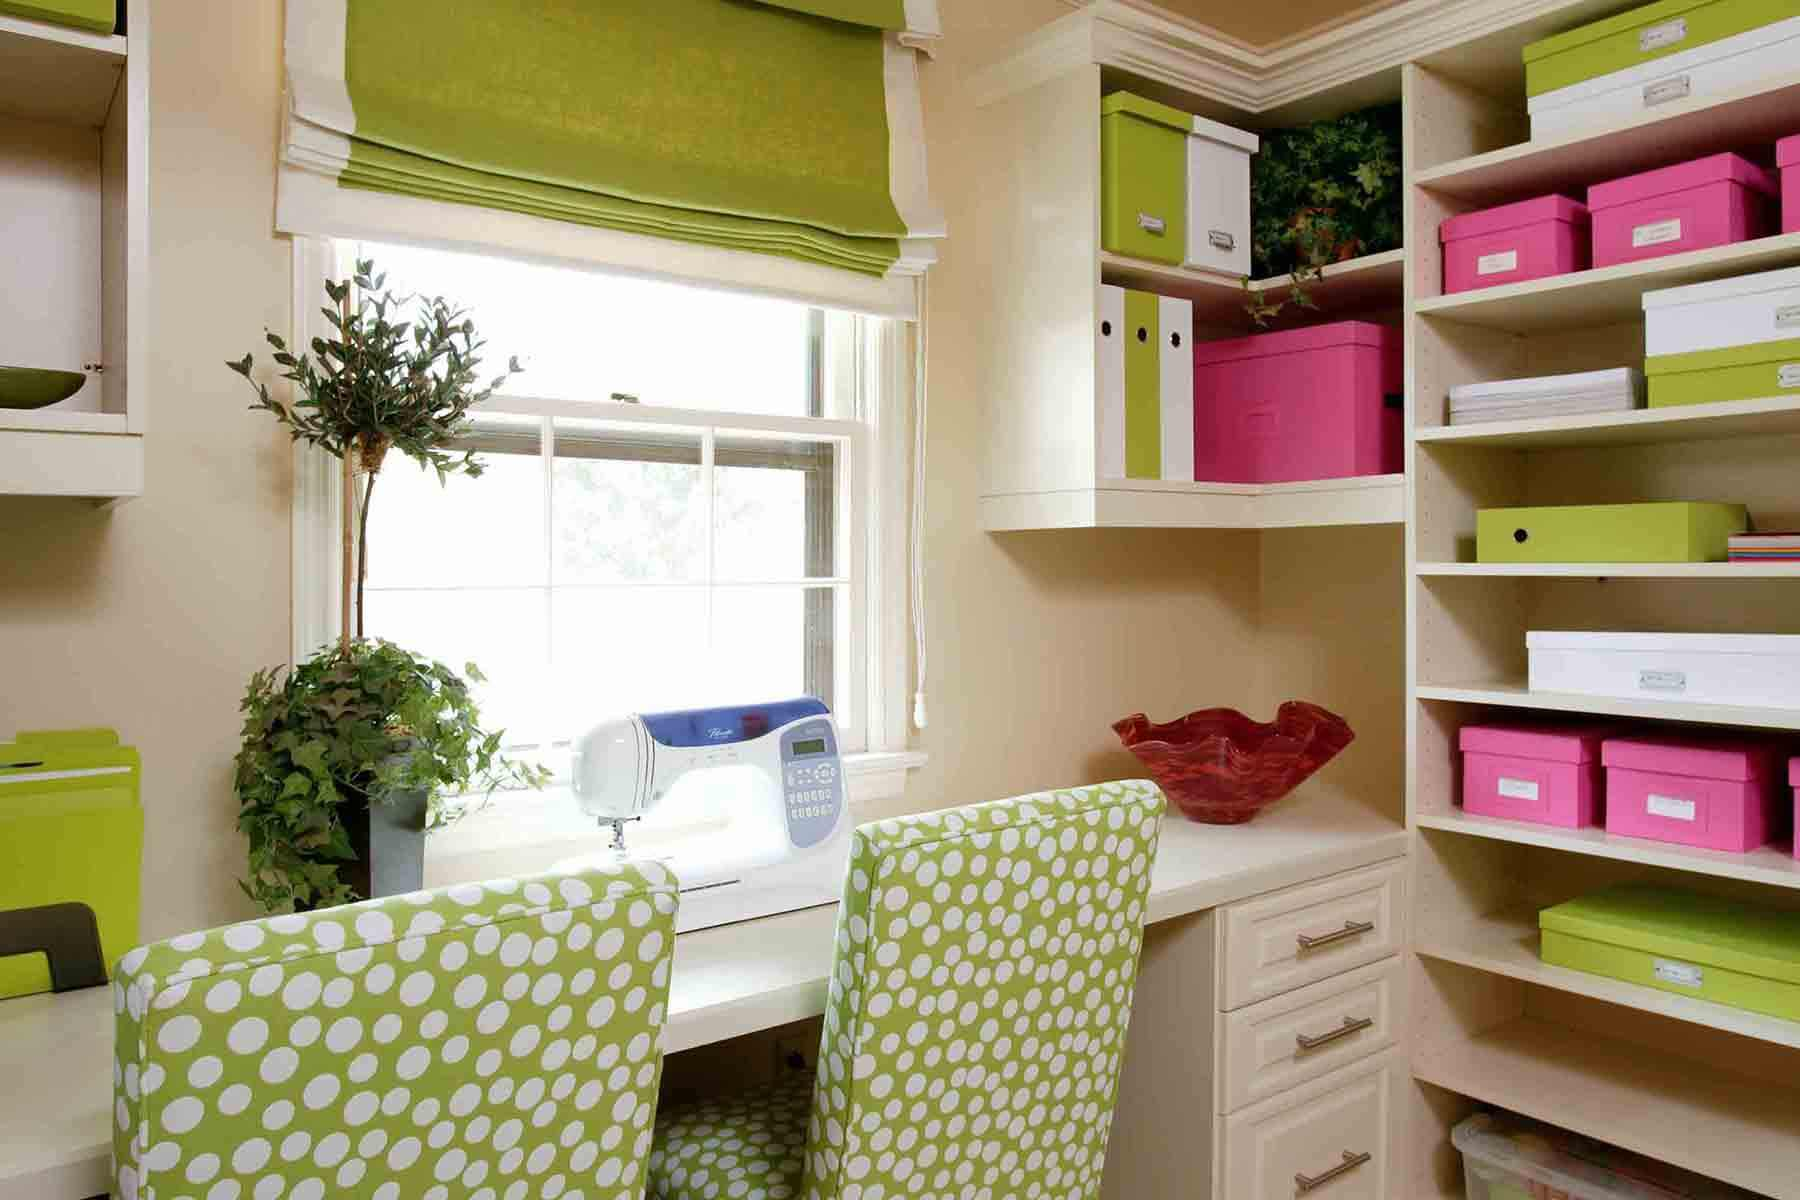 Sewing Room Design Ideas 23 craft room design ideas creative rooms Green Pink And White Craft And Sewing Room With Custom Built In Storage From Floor